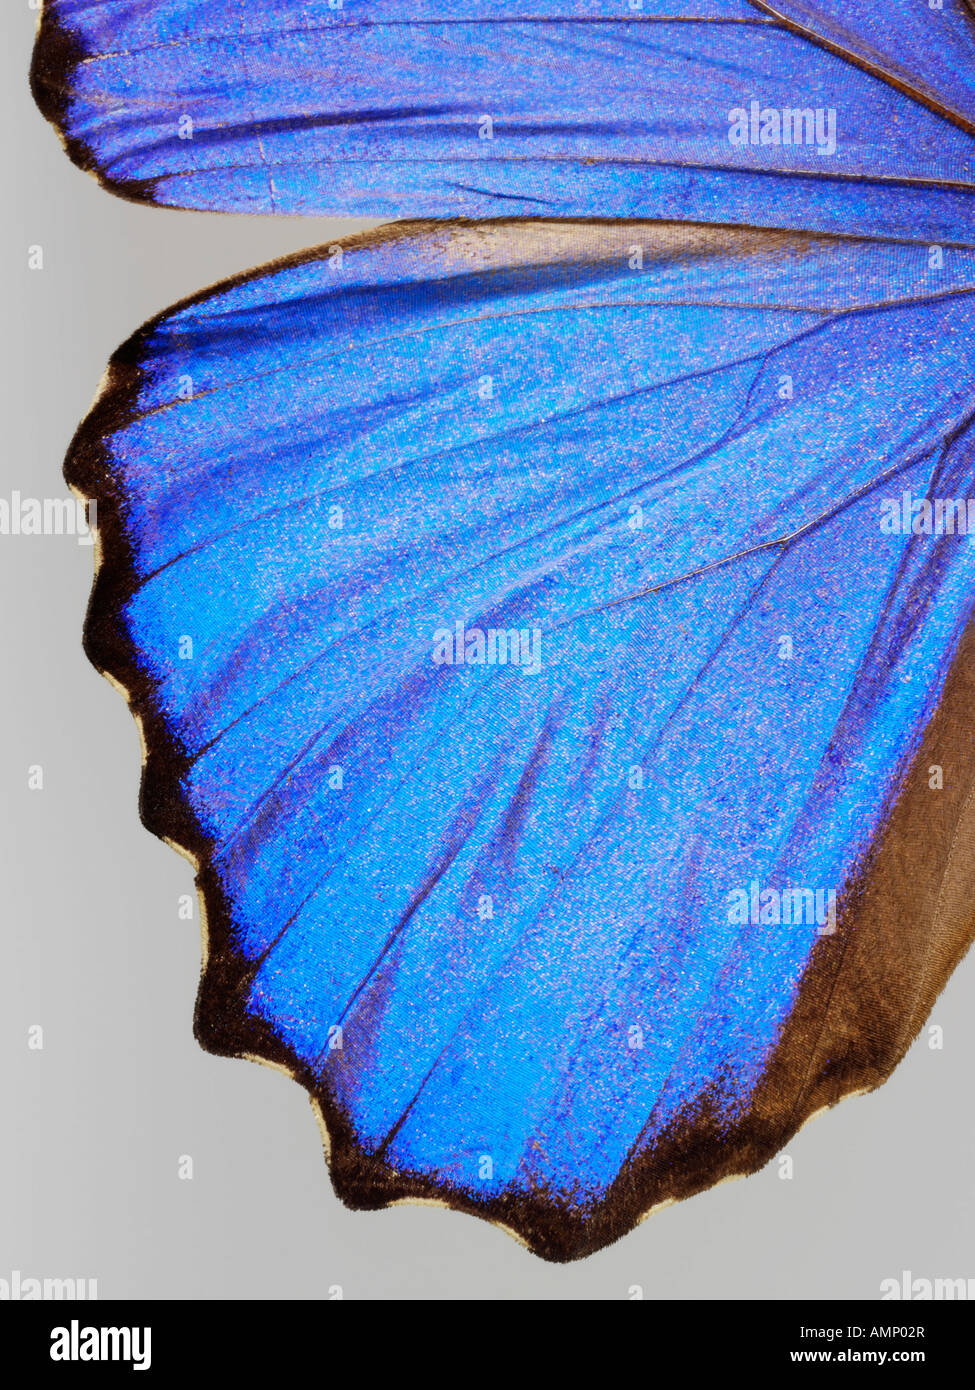 top shot plan extreme close up view of a Menelaus blue morpho (Morpho menelaus)  butterfly, opened winged, against - Stock Image